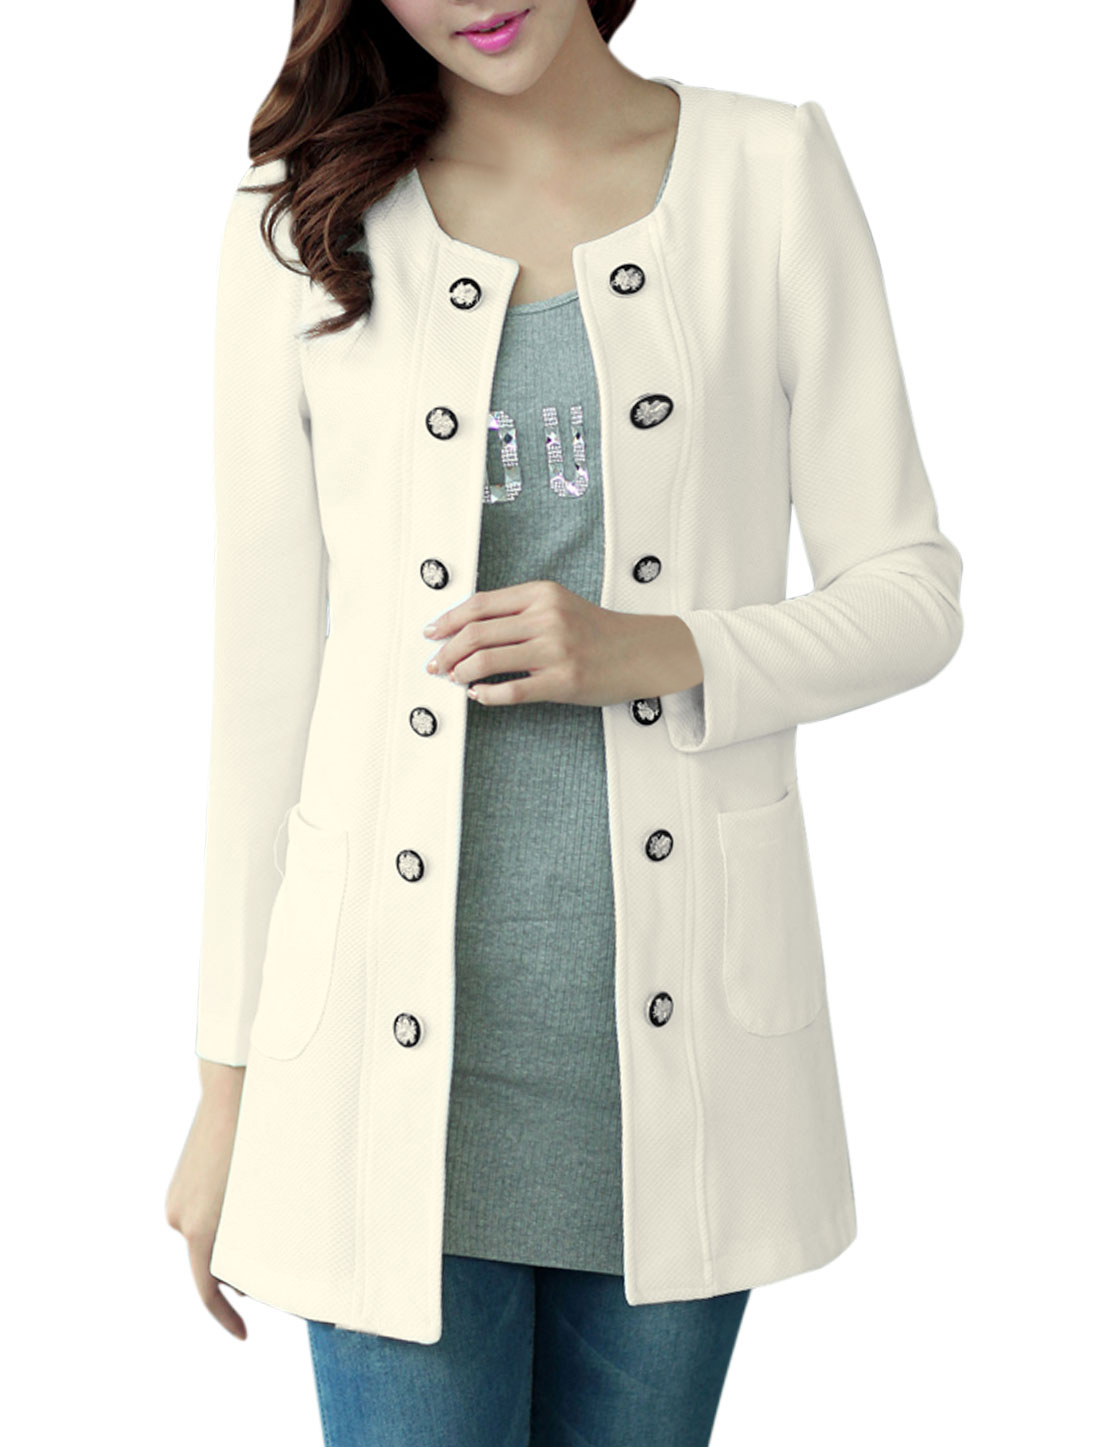 Ladies Hook Eye Closure Long Sleeves White Trench Jacket L